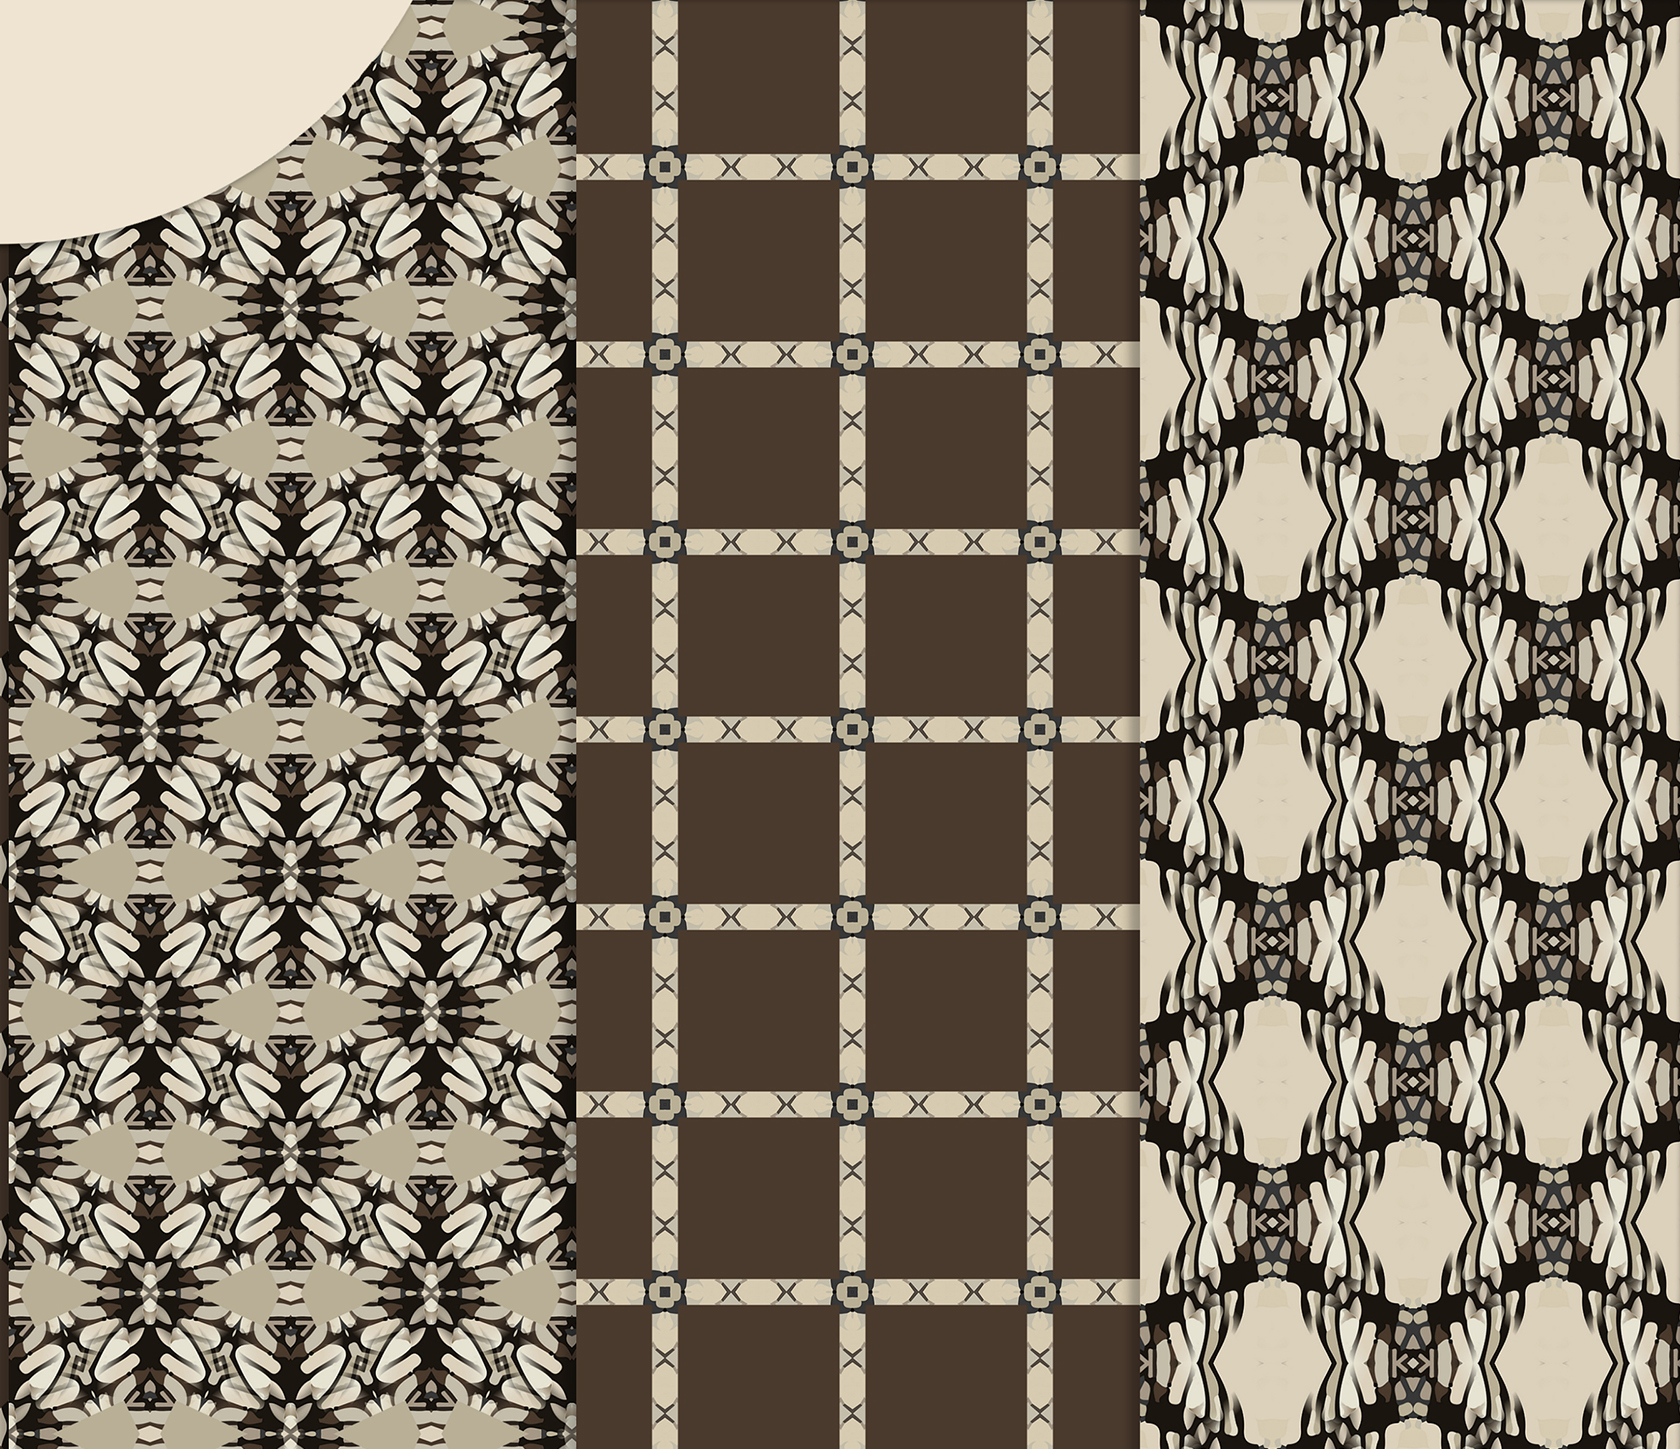 Brown-Gray abstract Digital Scrapbook Paper example image 3